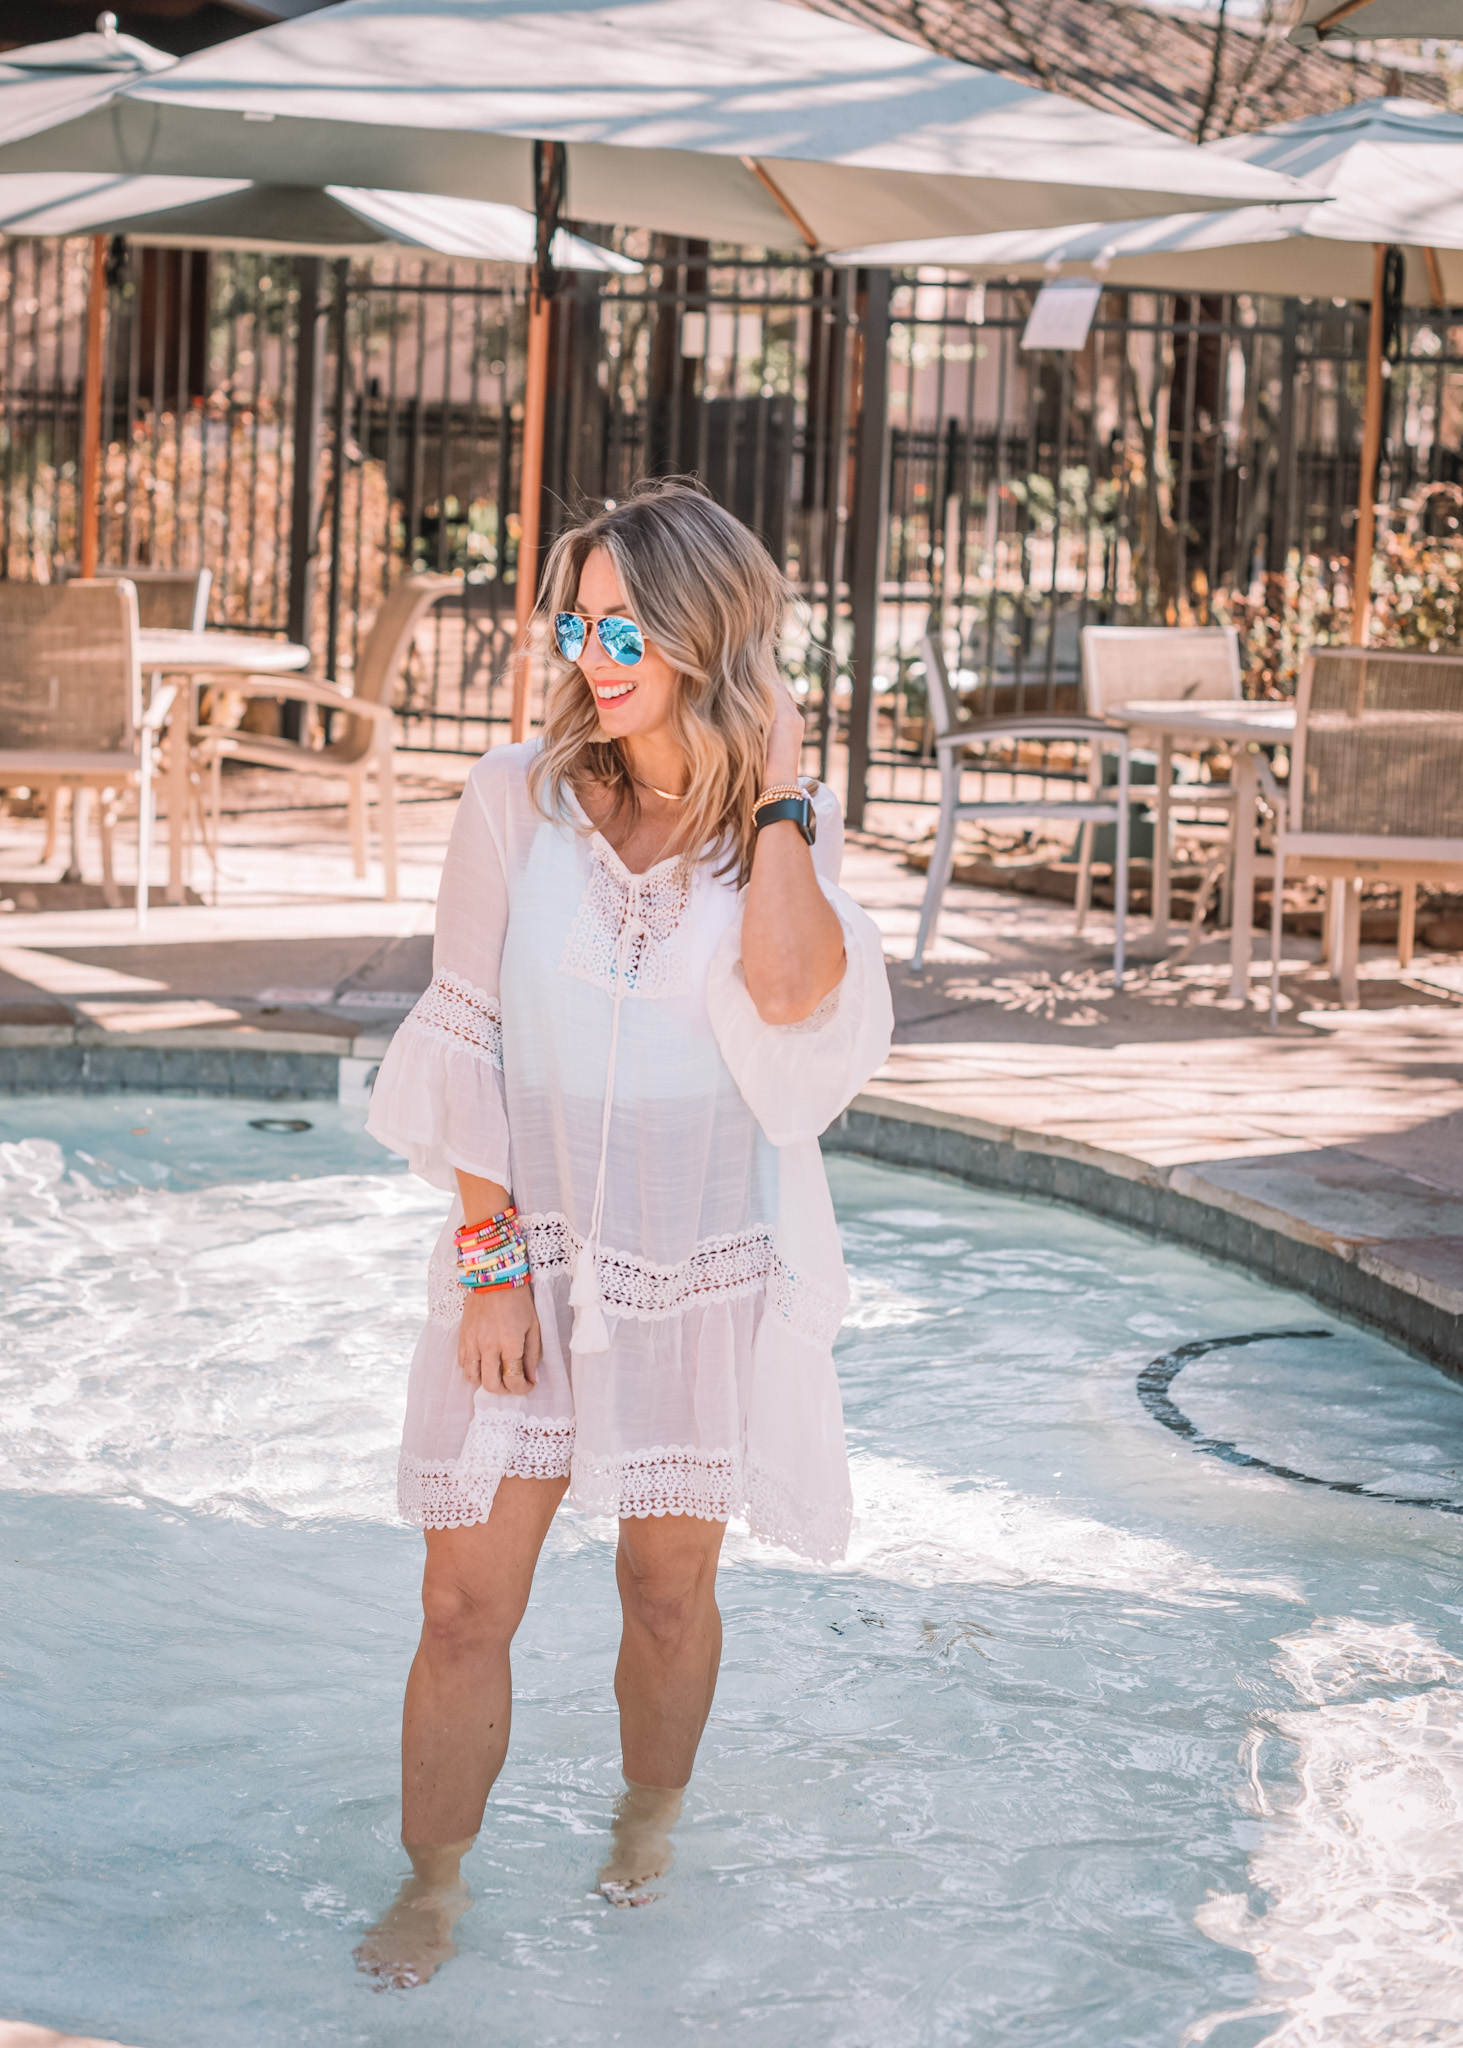 Amazon Fashion Faves, Swimsuit Cover Up, Sunglasses